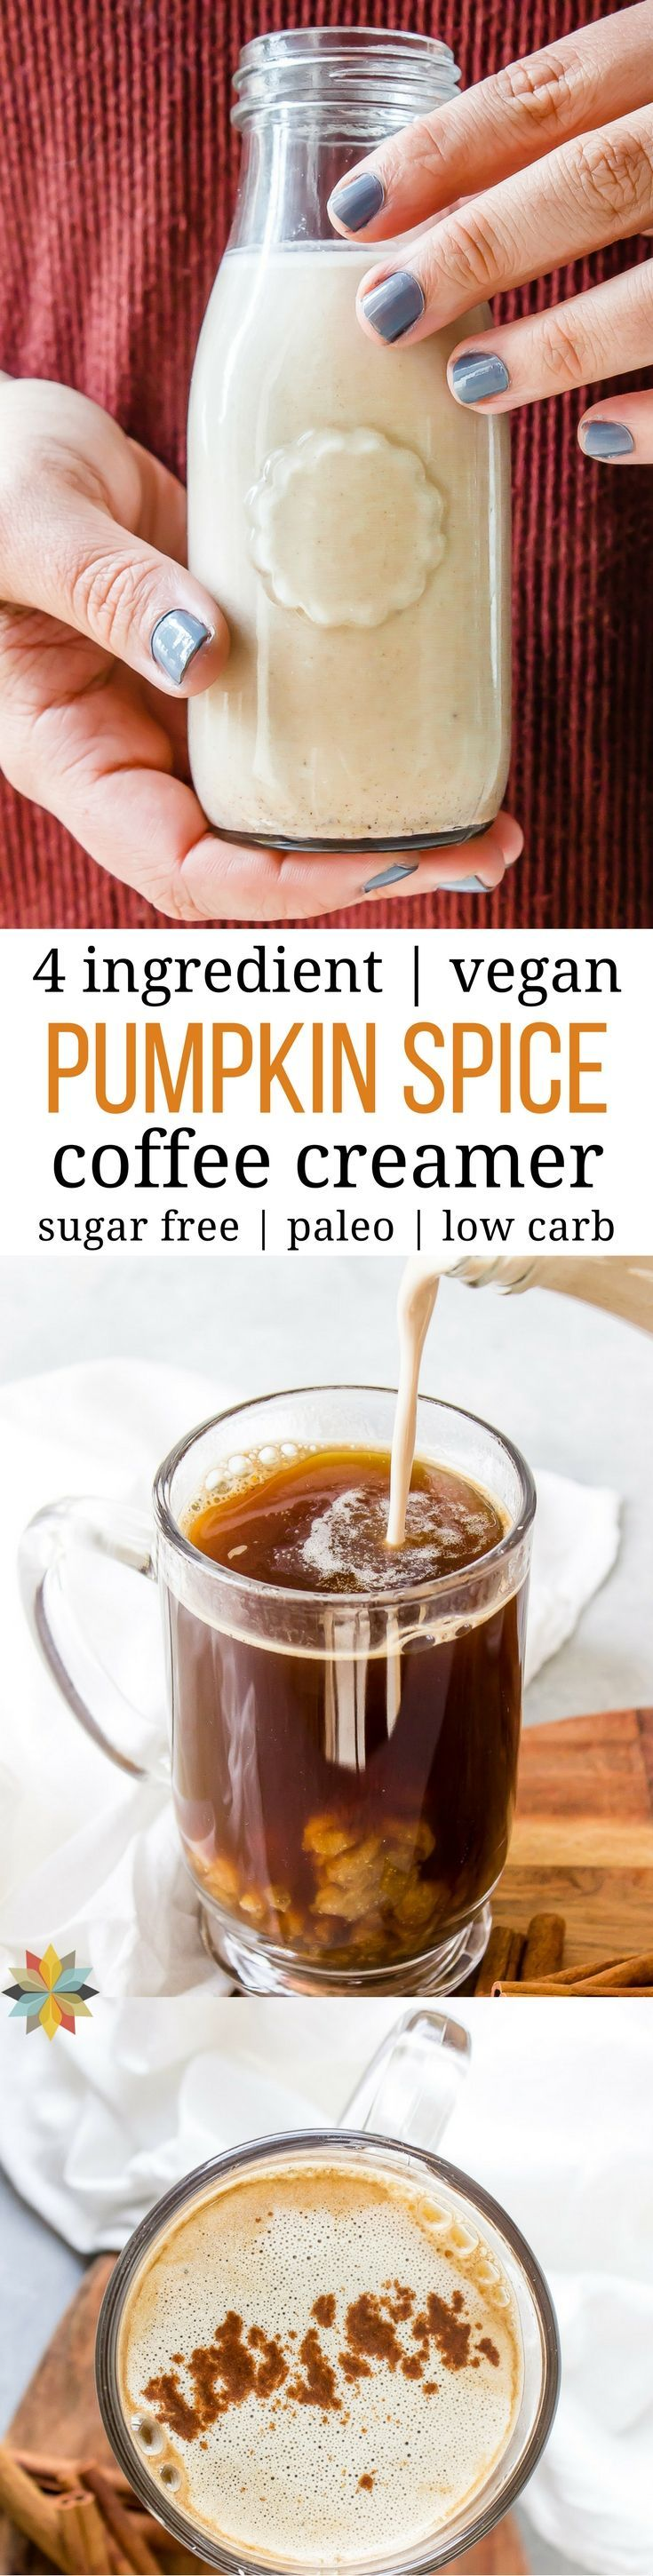 4 Ingredient Vegan Pumpkin Pie Spiced Coffee Creamer - Dairy & Sugar-free! Easy to make and so yummy with low carb and AIP options. THM:S, keto, healthy and paleo via @wholenewmom